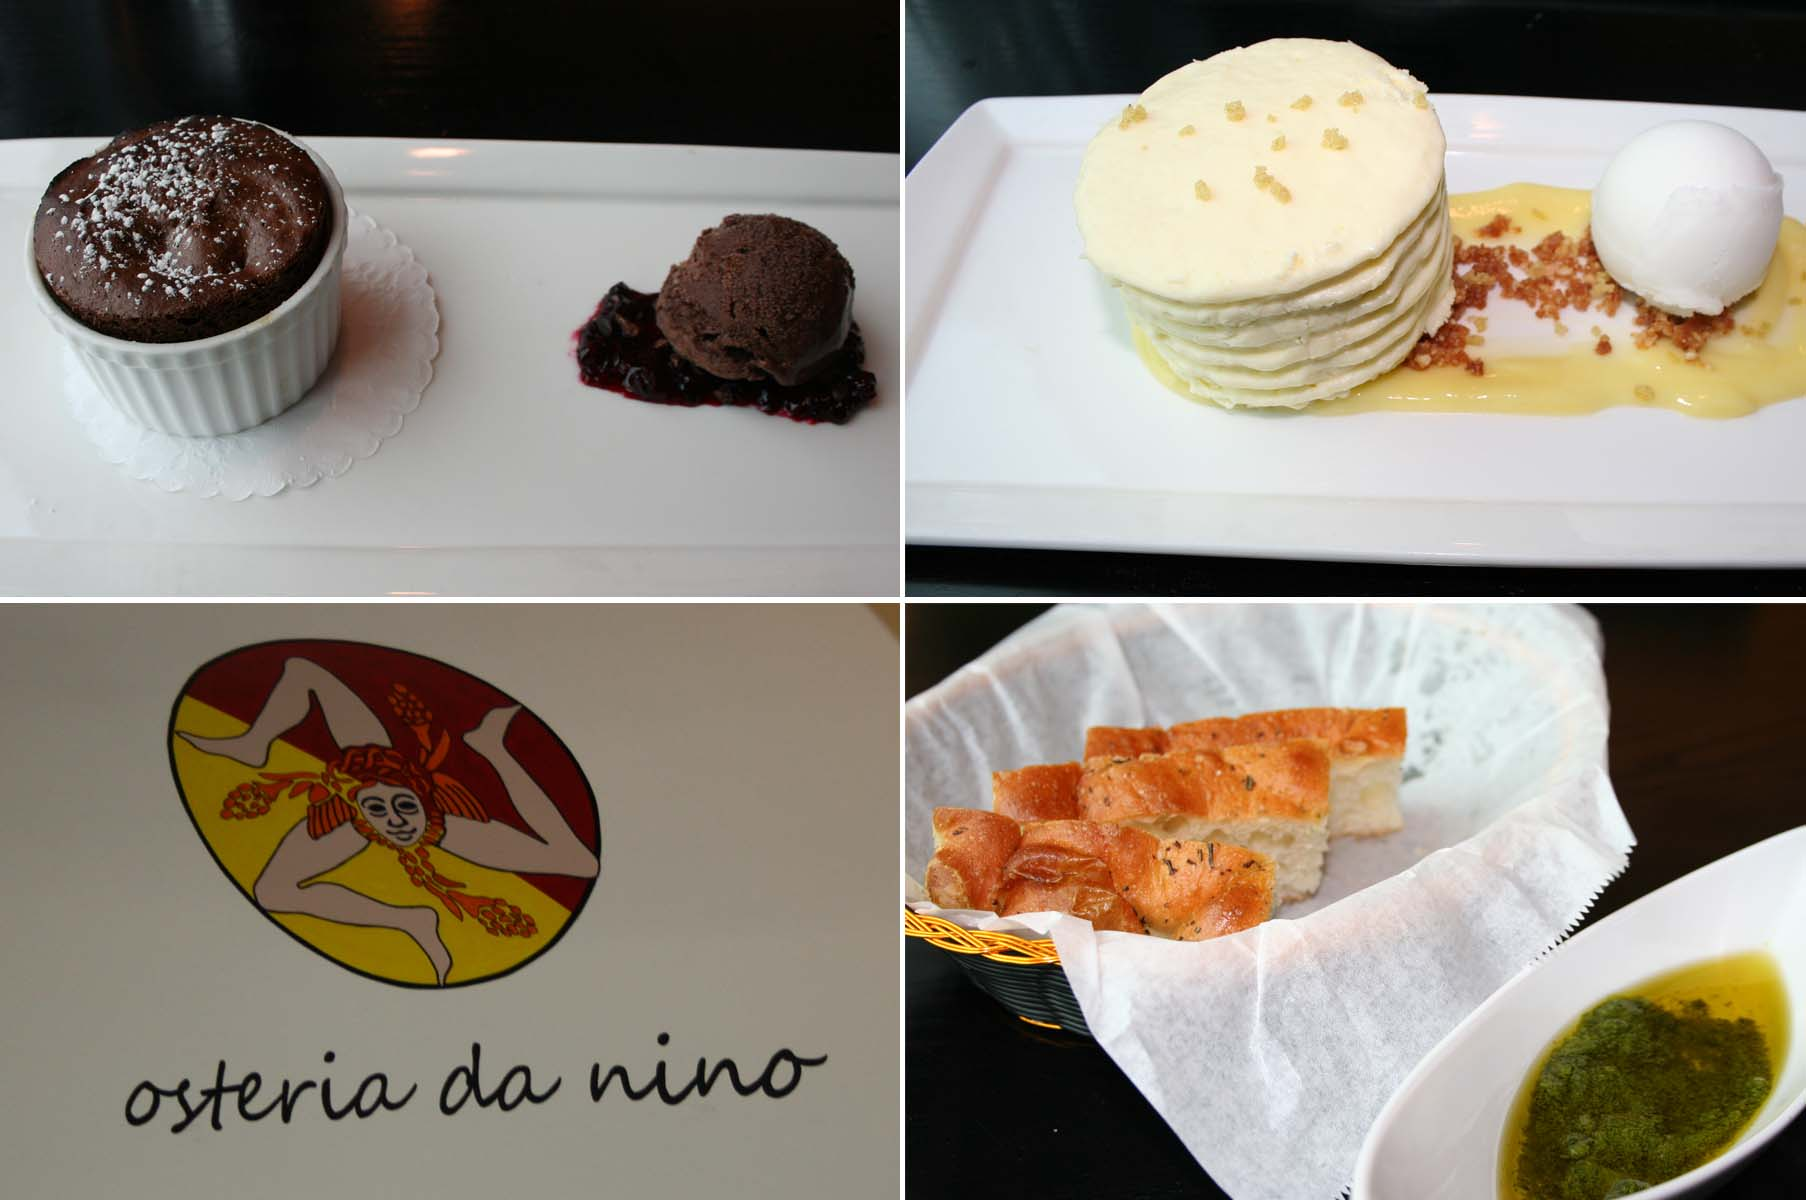 Desserts include chocolate soufflé (clockwise from the top left), an olive oil cake with mascarpone lemon curd. Each meal begins with focaccia and pesto in olive oil. (Photos: Mark Heckathorn/DC on Heels)